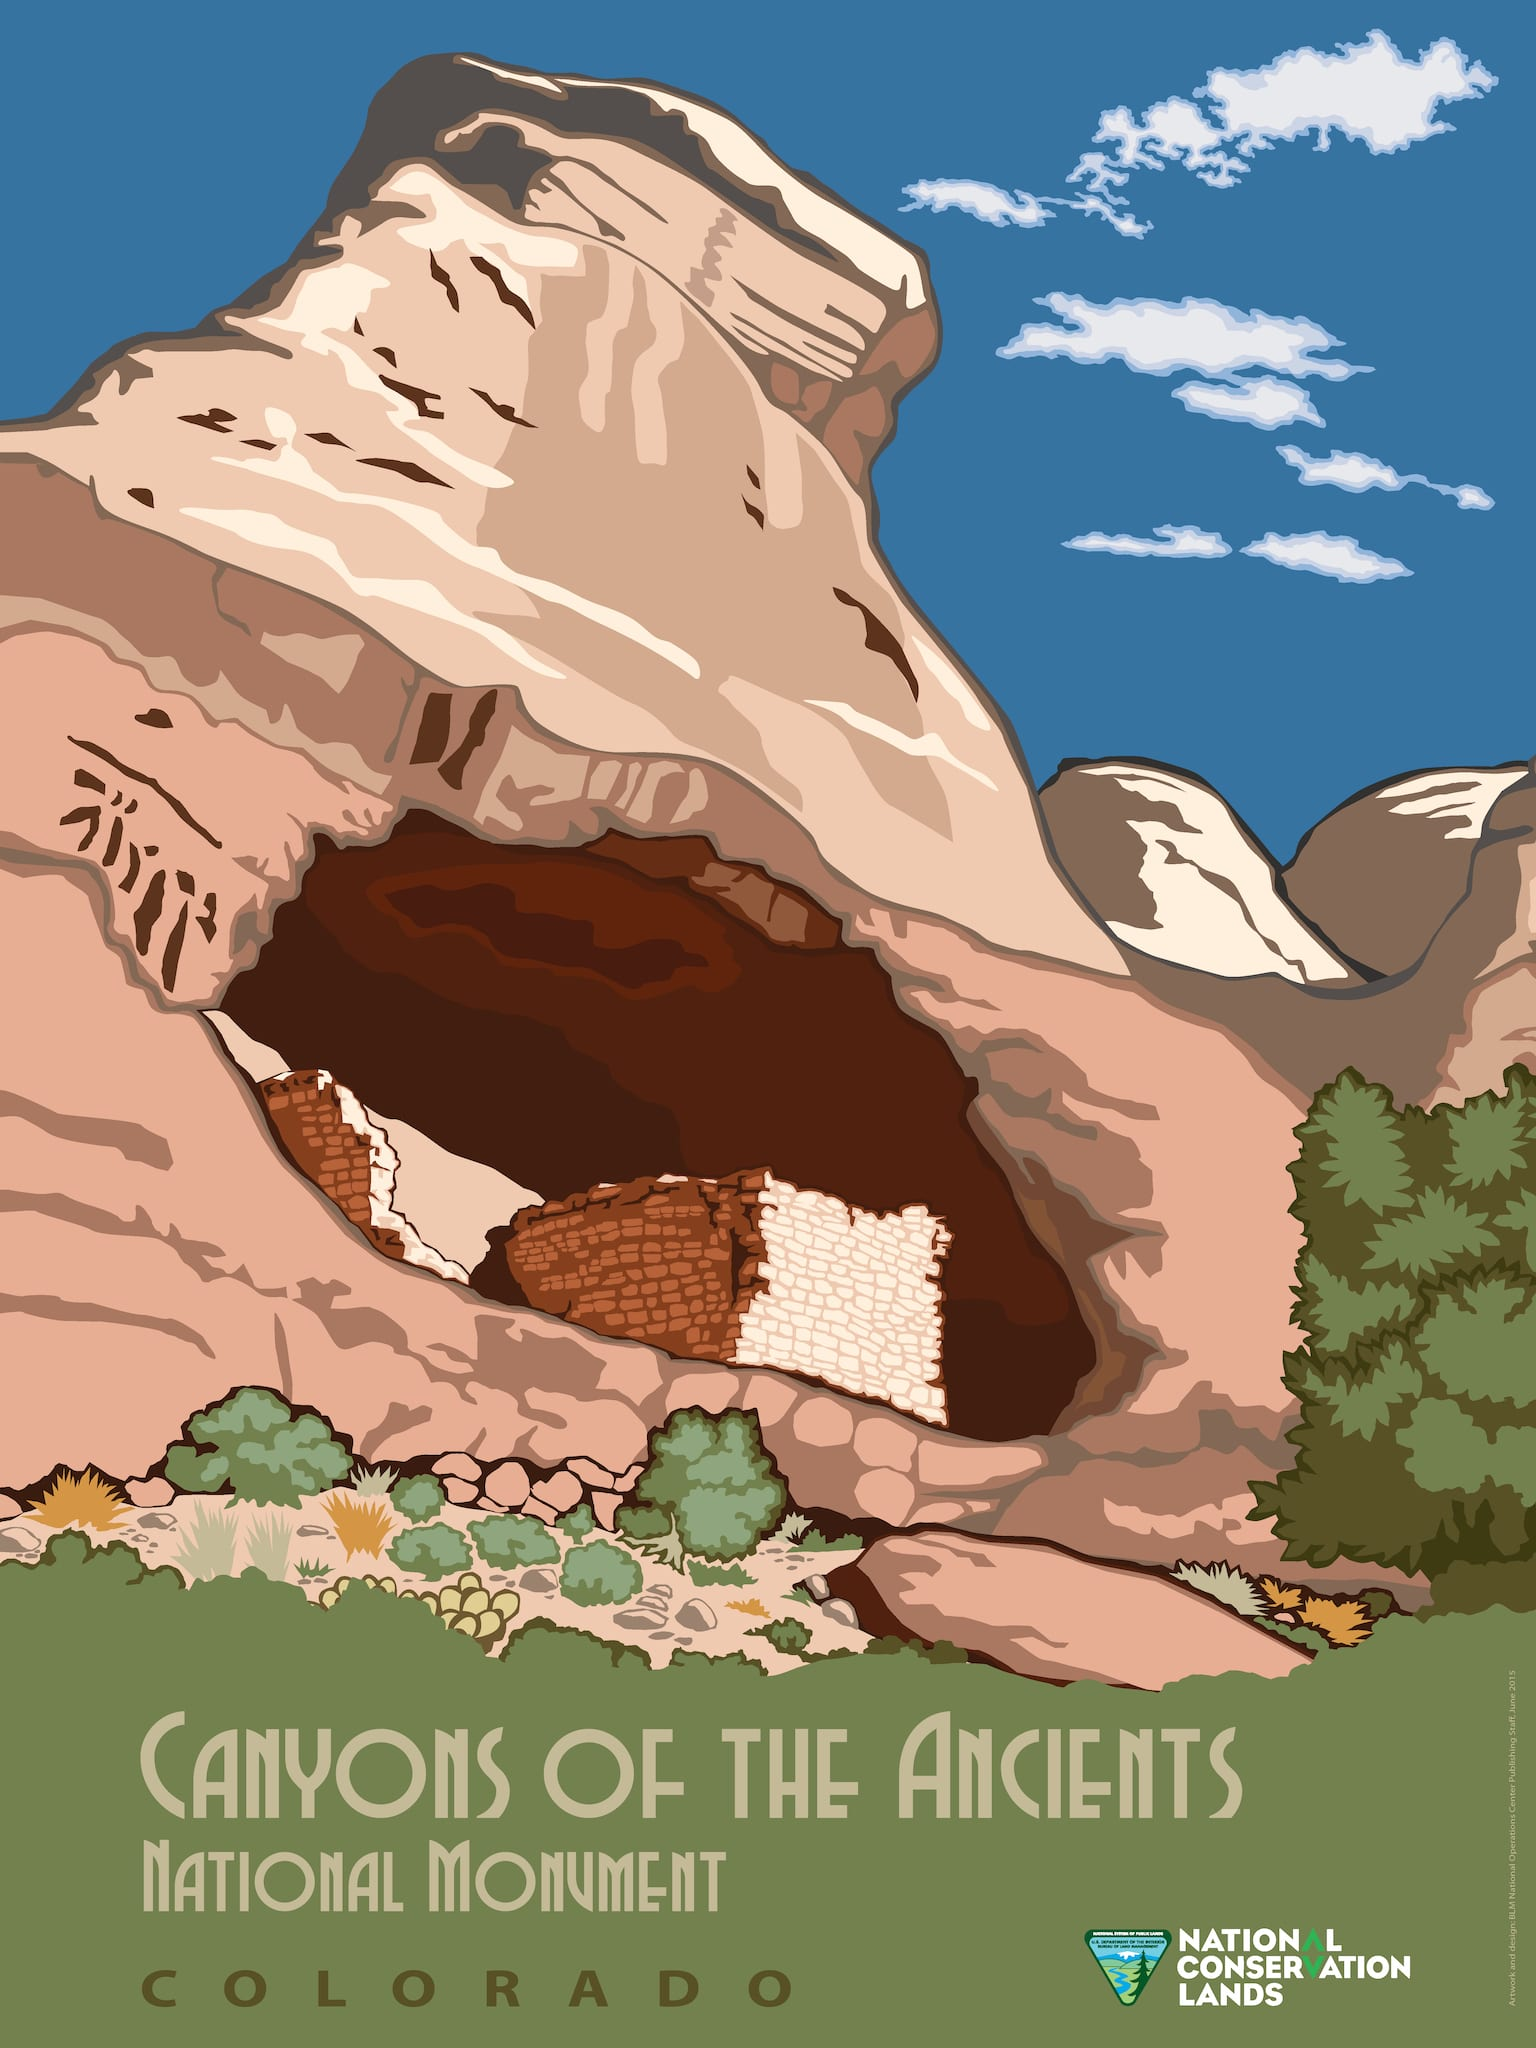 Canyons of the Ancients National Monument Colorado Poster